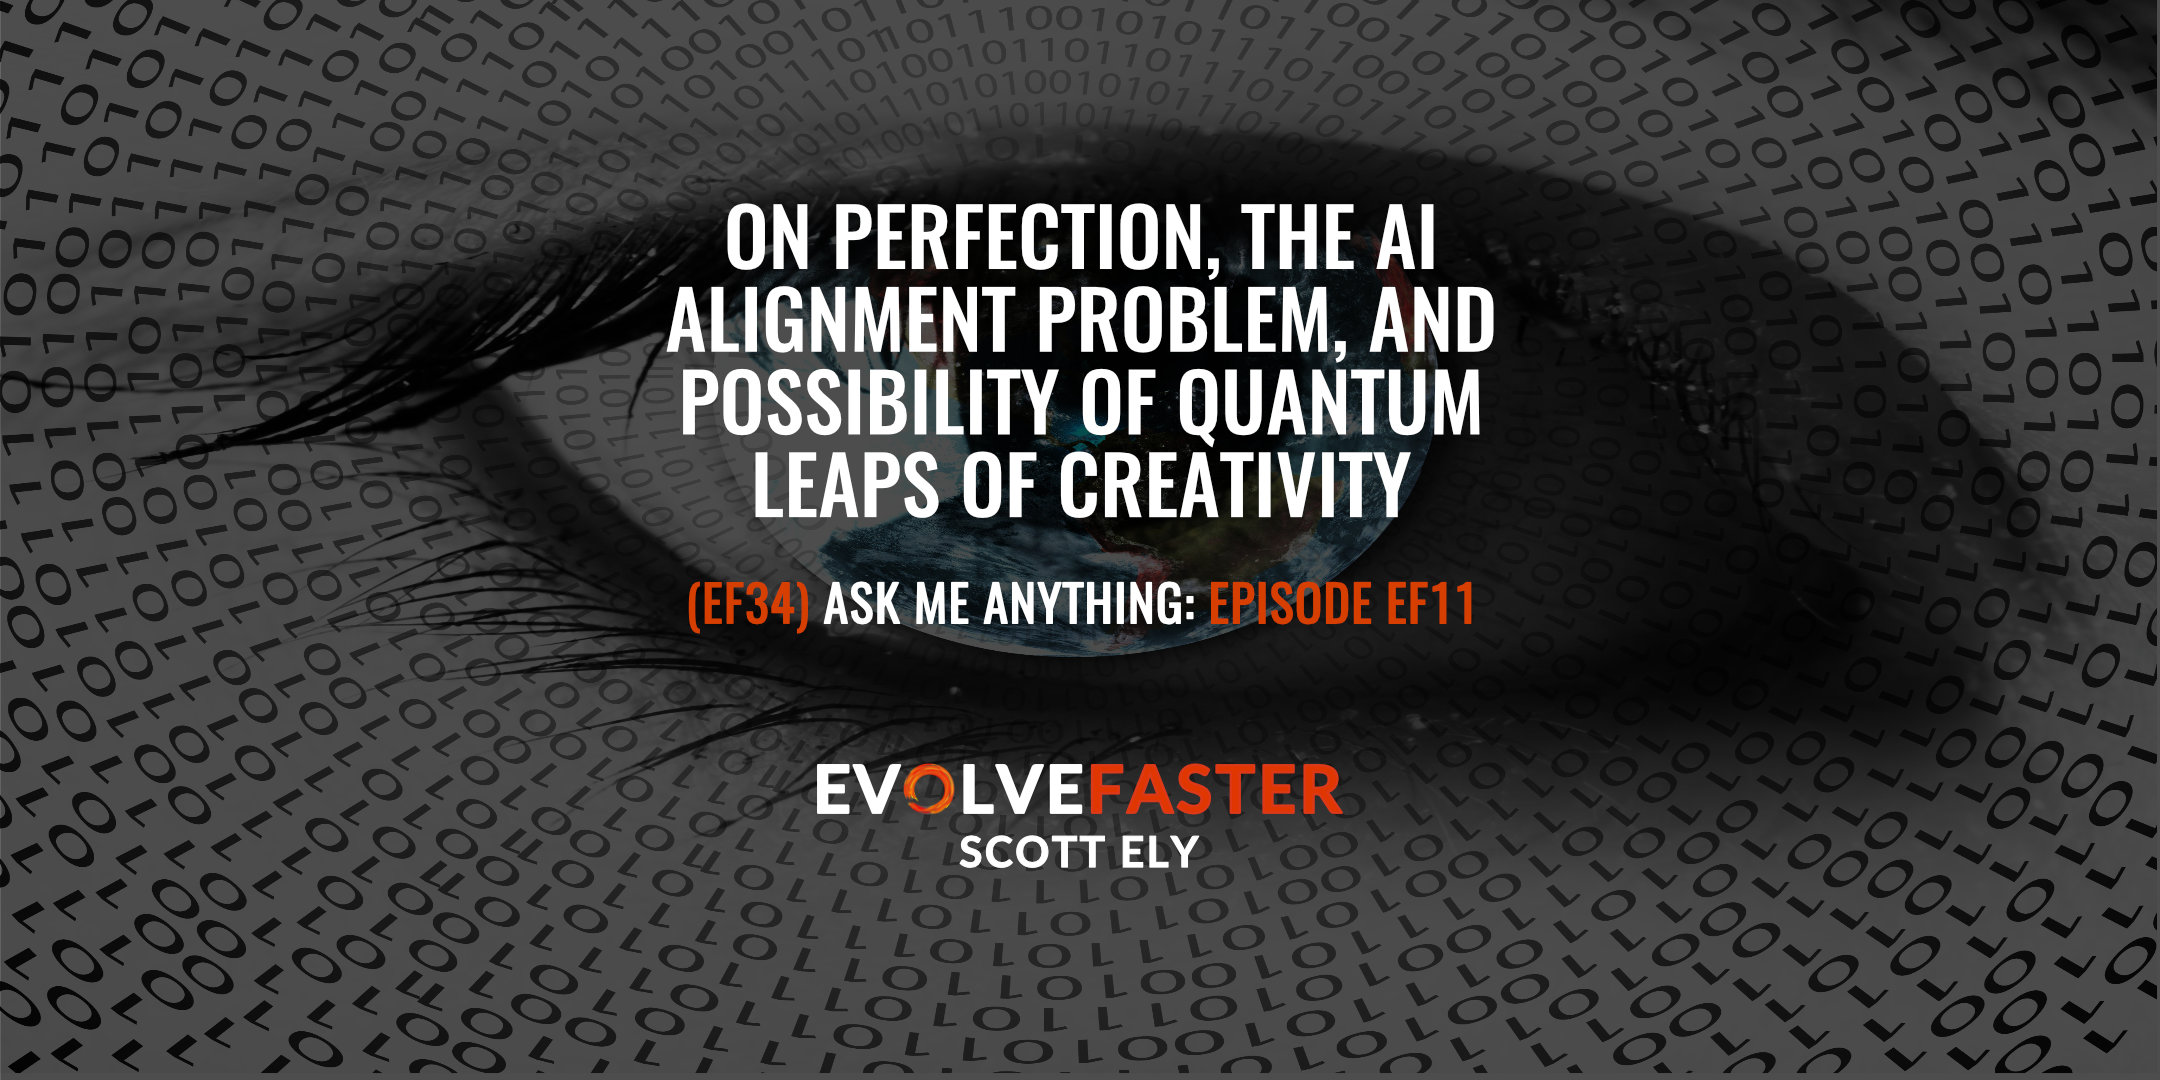 (EF34) AMA-EF11: On Perfection the AI Alignment Problem and Possibility of Quantum Leaps of Creativity Ask Me Anything for Episode EF11